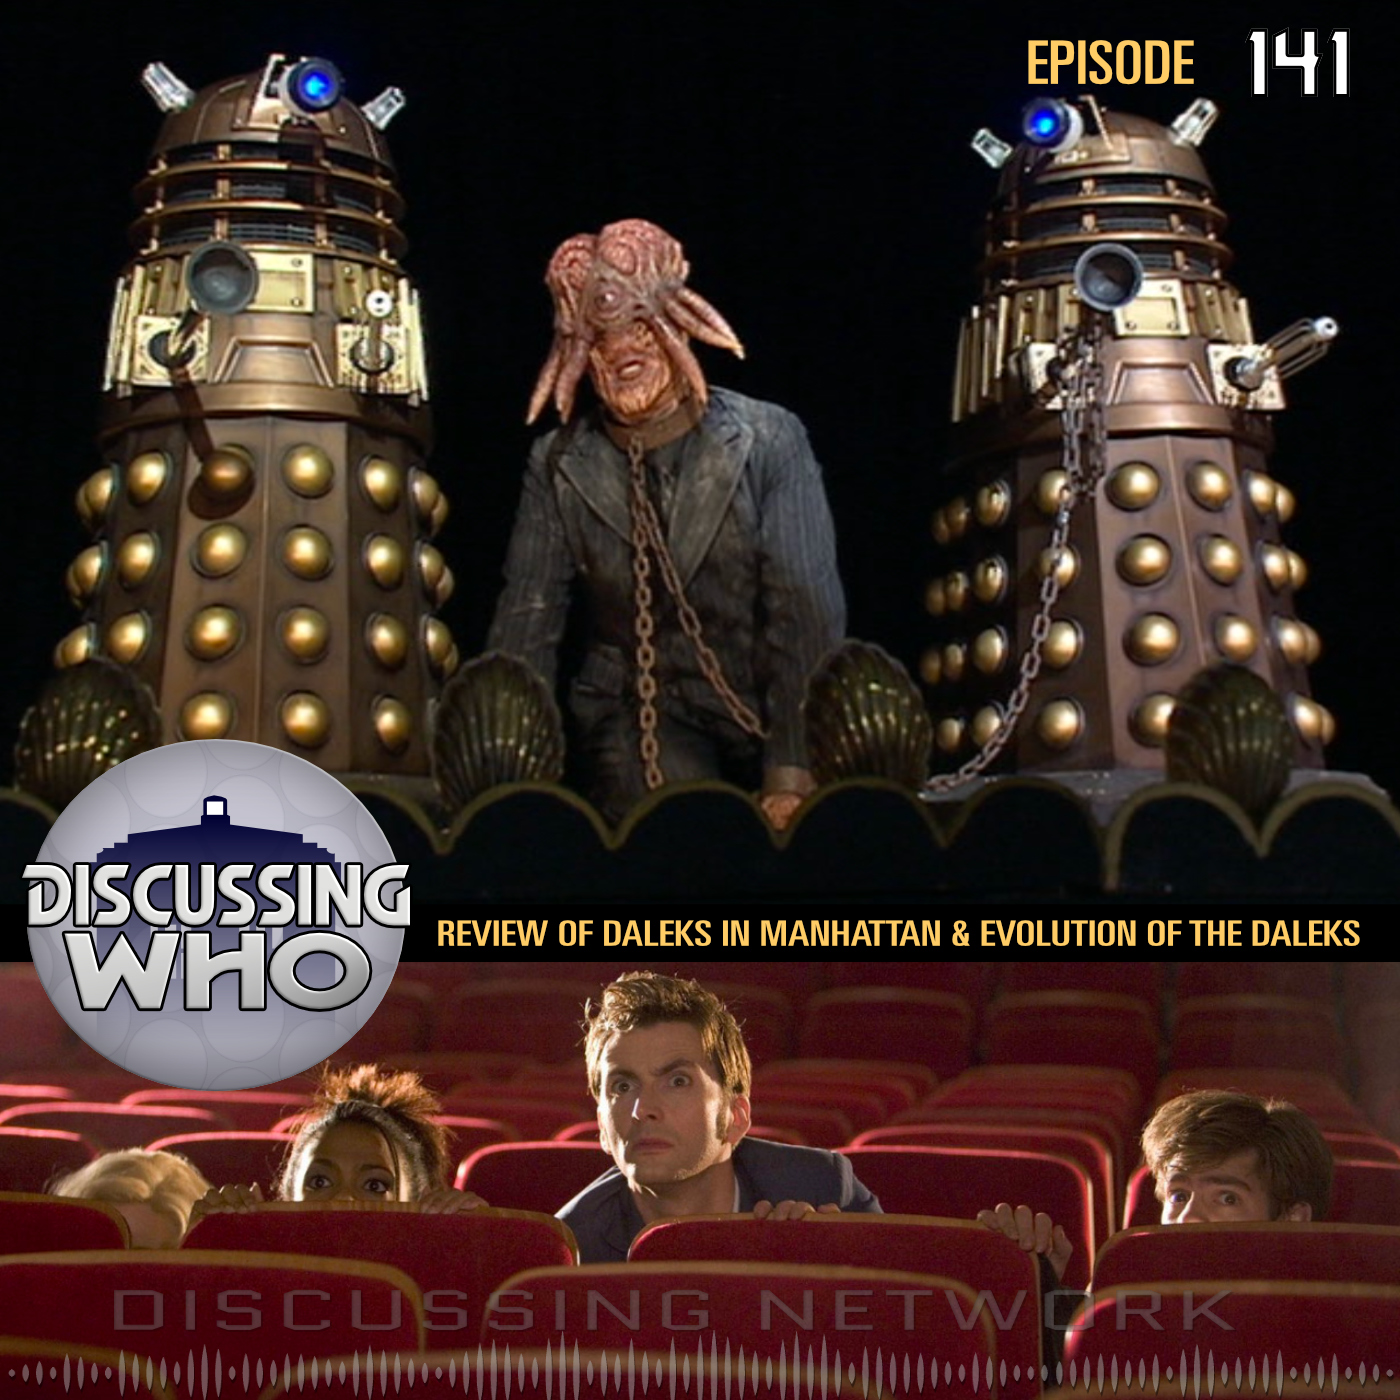 Review of Daleks in Manhattan and Evolution of the Daleks